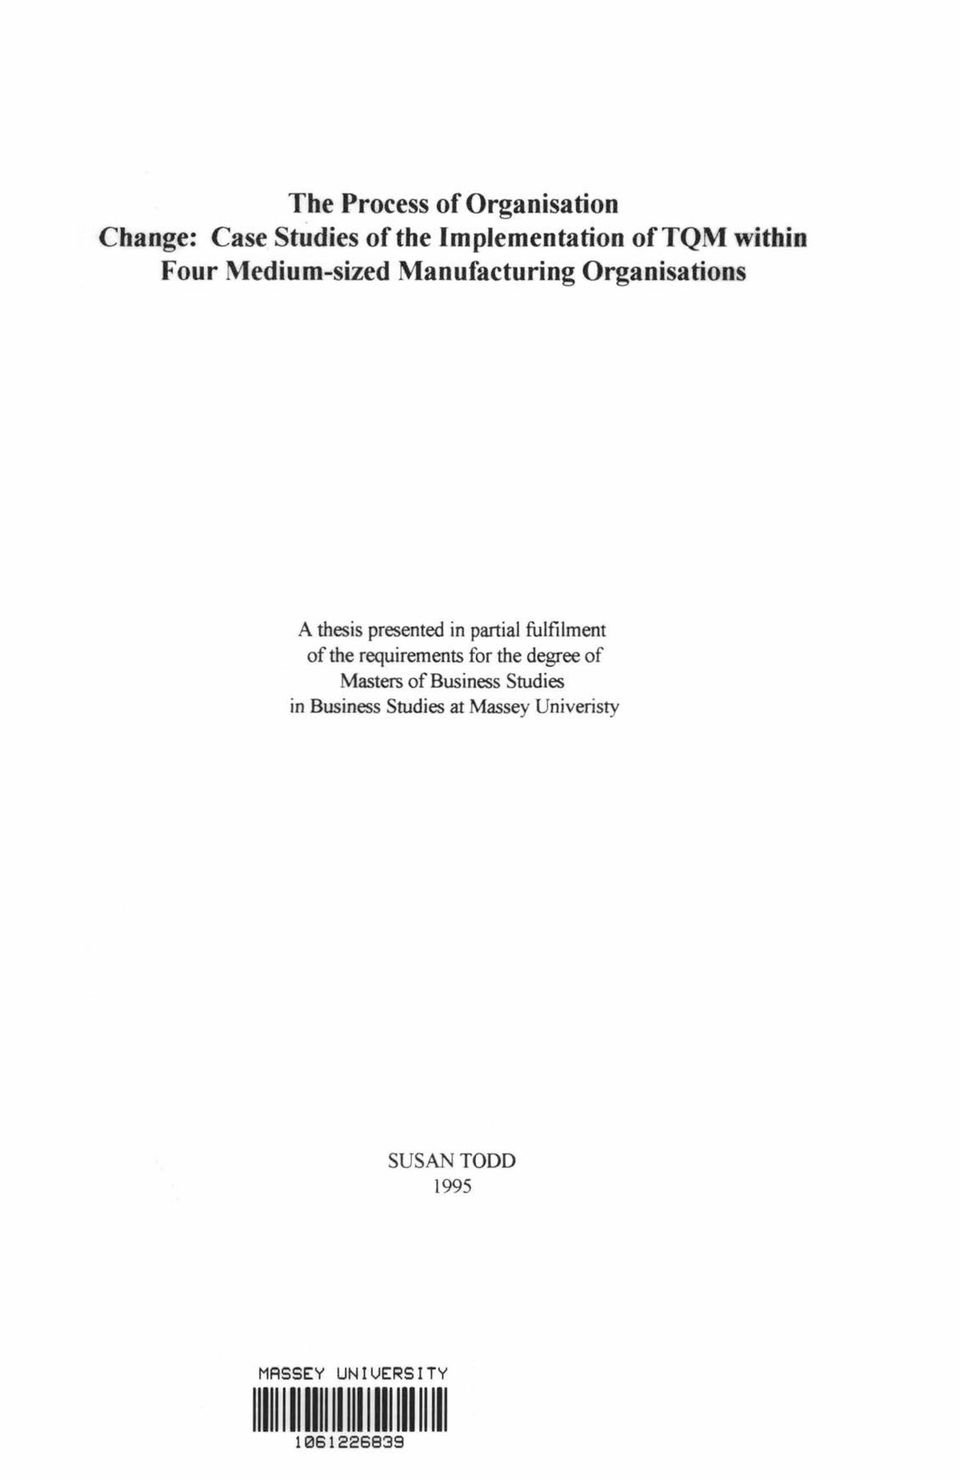 A thesis presented in partial fulfilment of the requirements for the degree of Masters